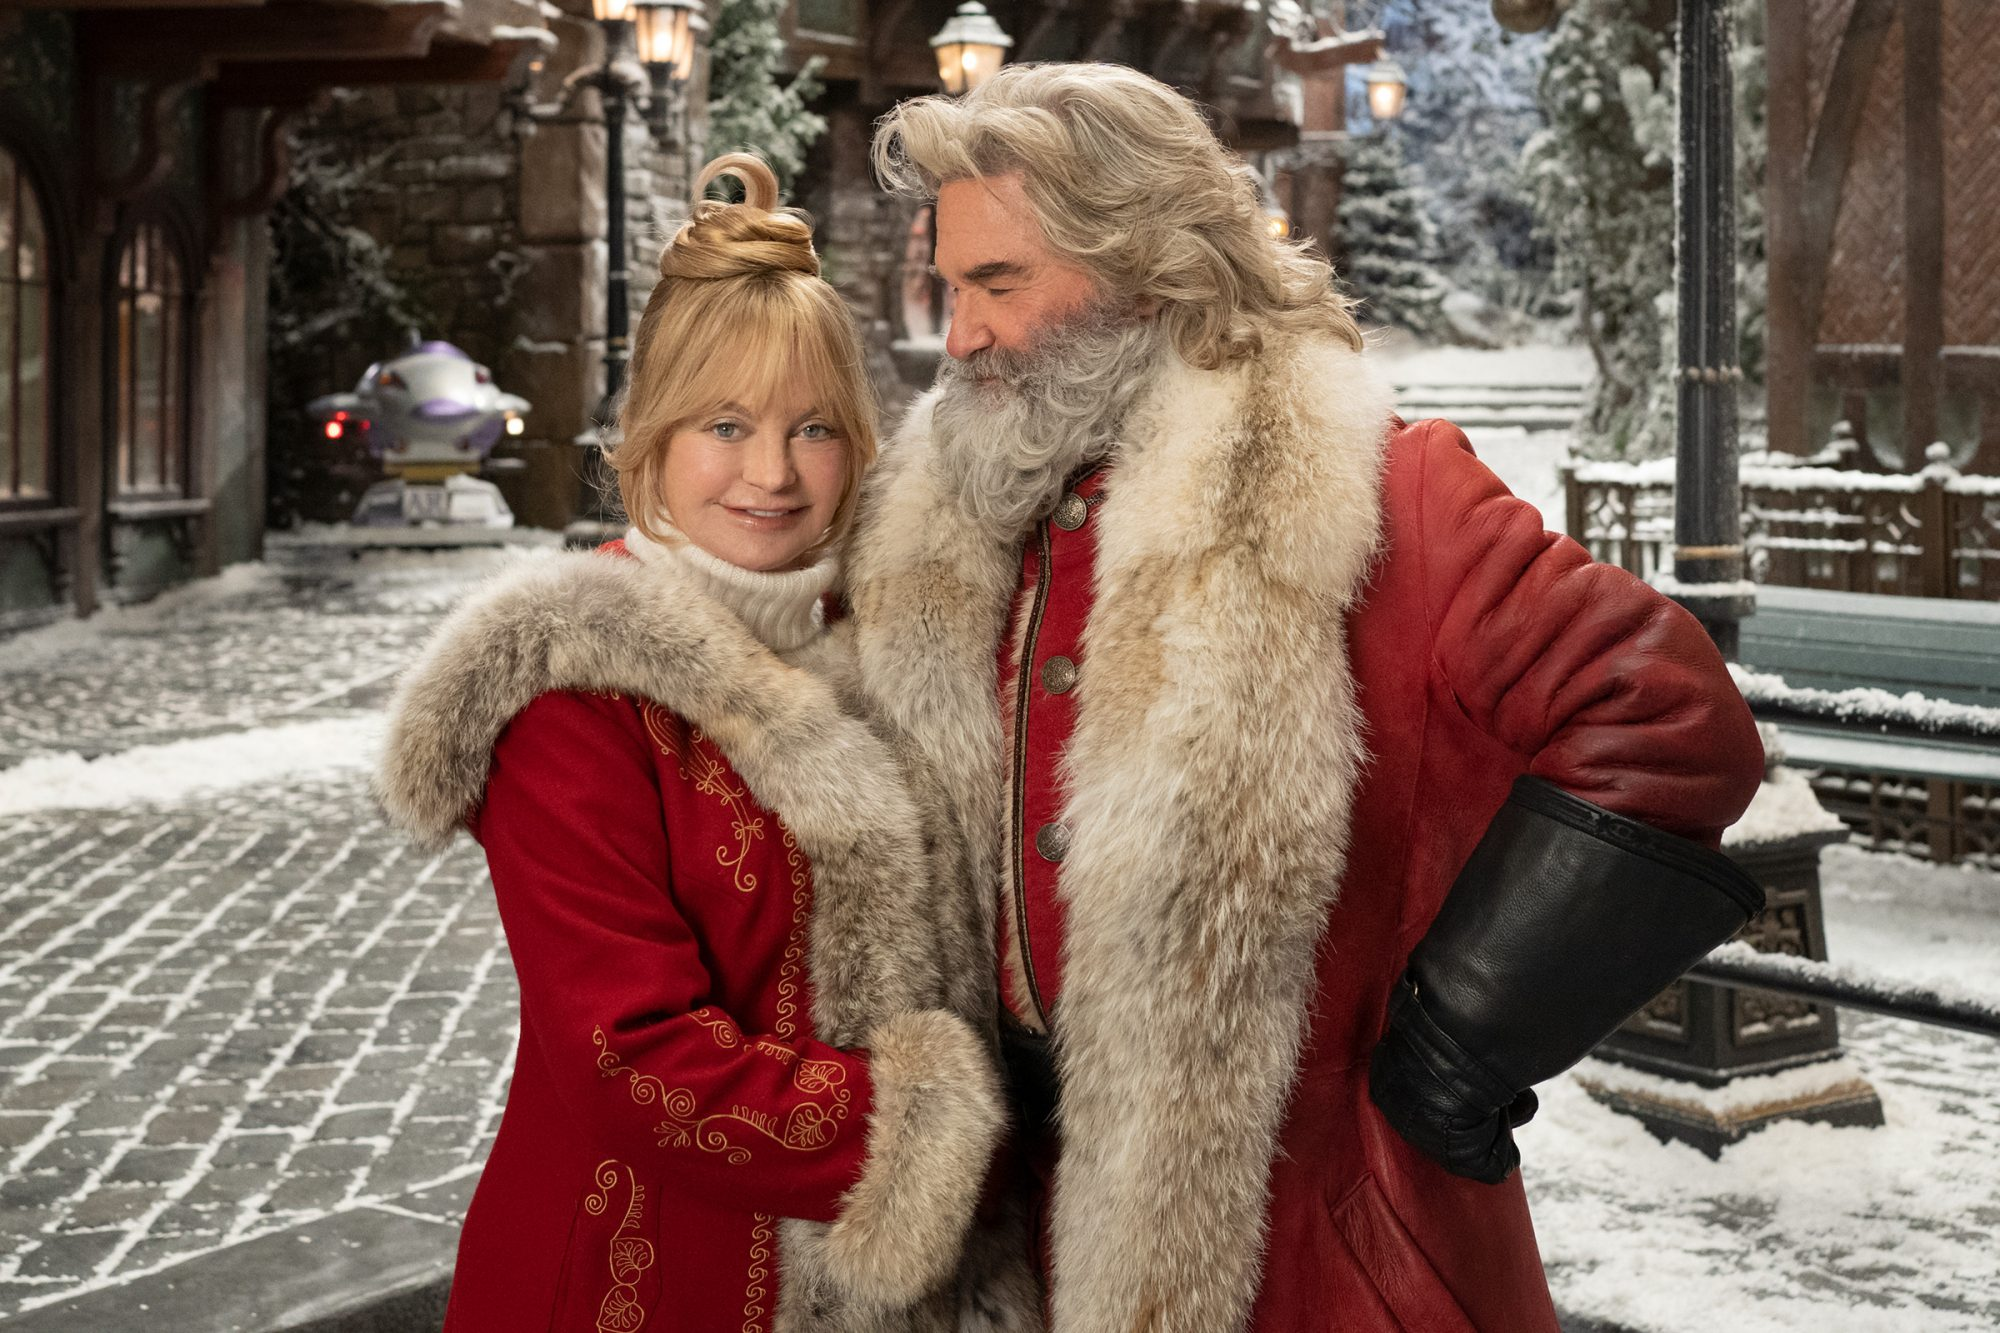 'The Christmas Chronicles 2' trailer